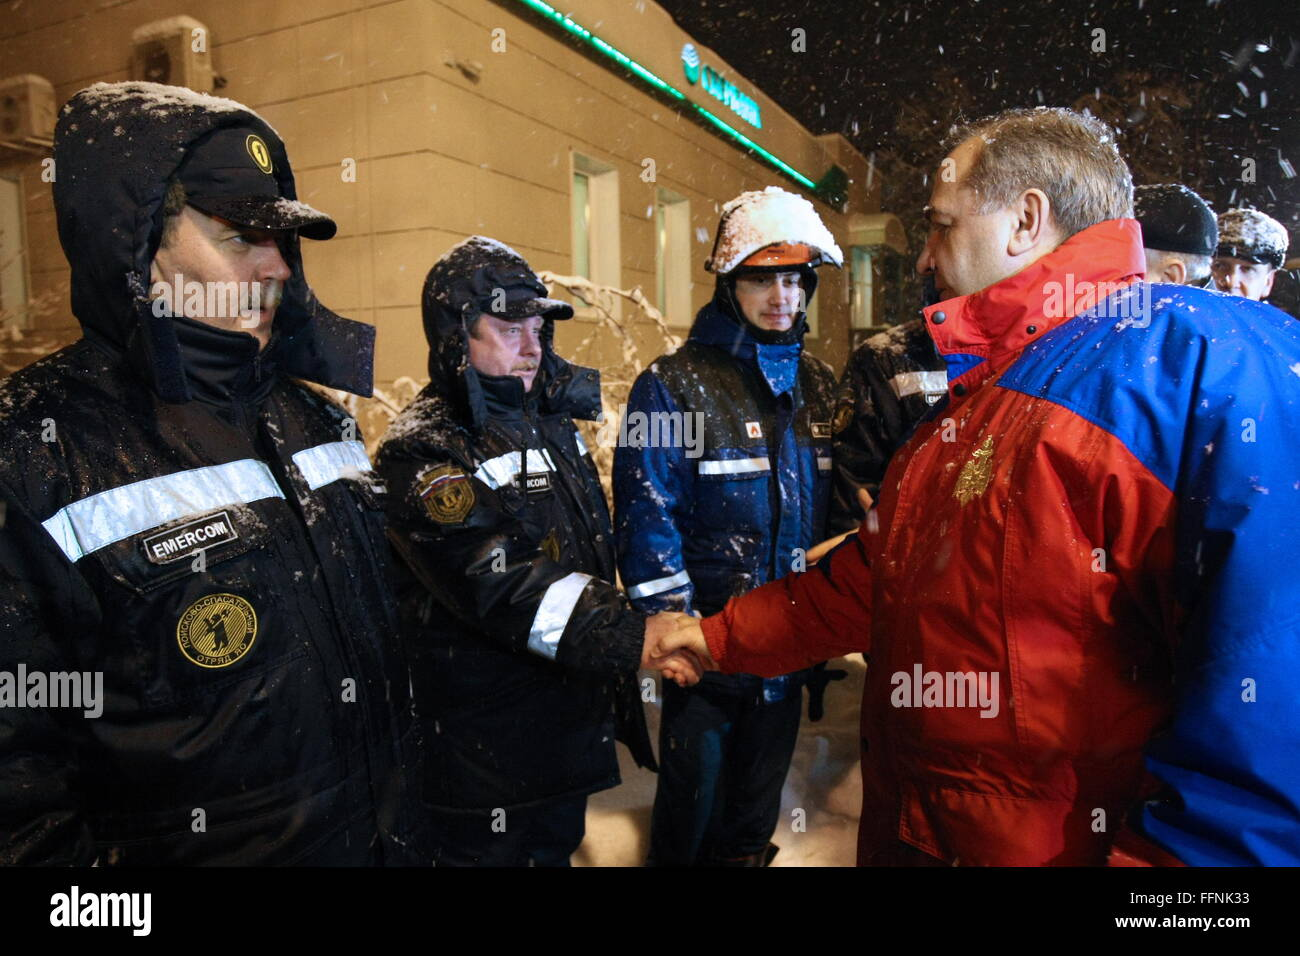 YAROSLAVL, RUSSIA. FEBRUARY 16, 2016. Russia's Emergency Situations Minister Vladimir Puchkov (R) and rescue - Stock Image